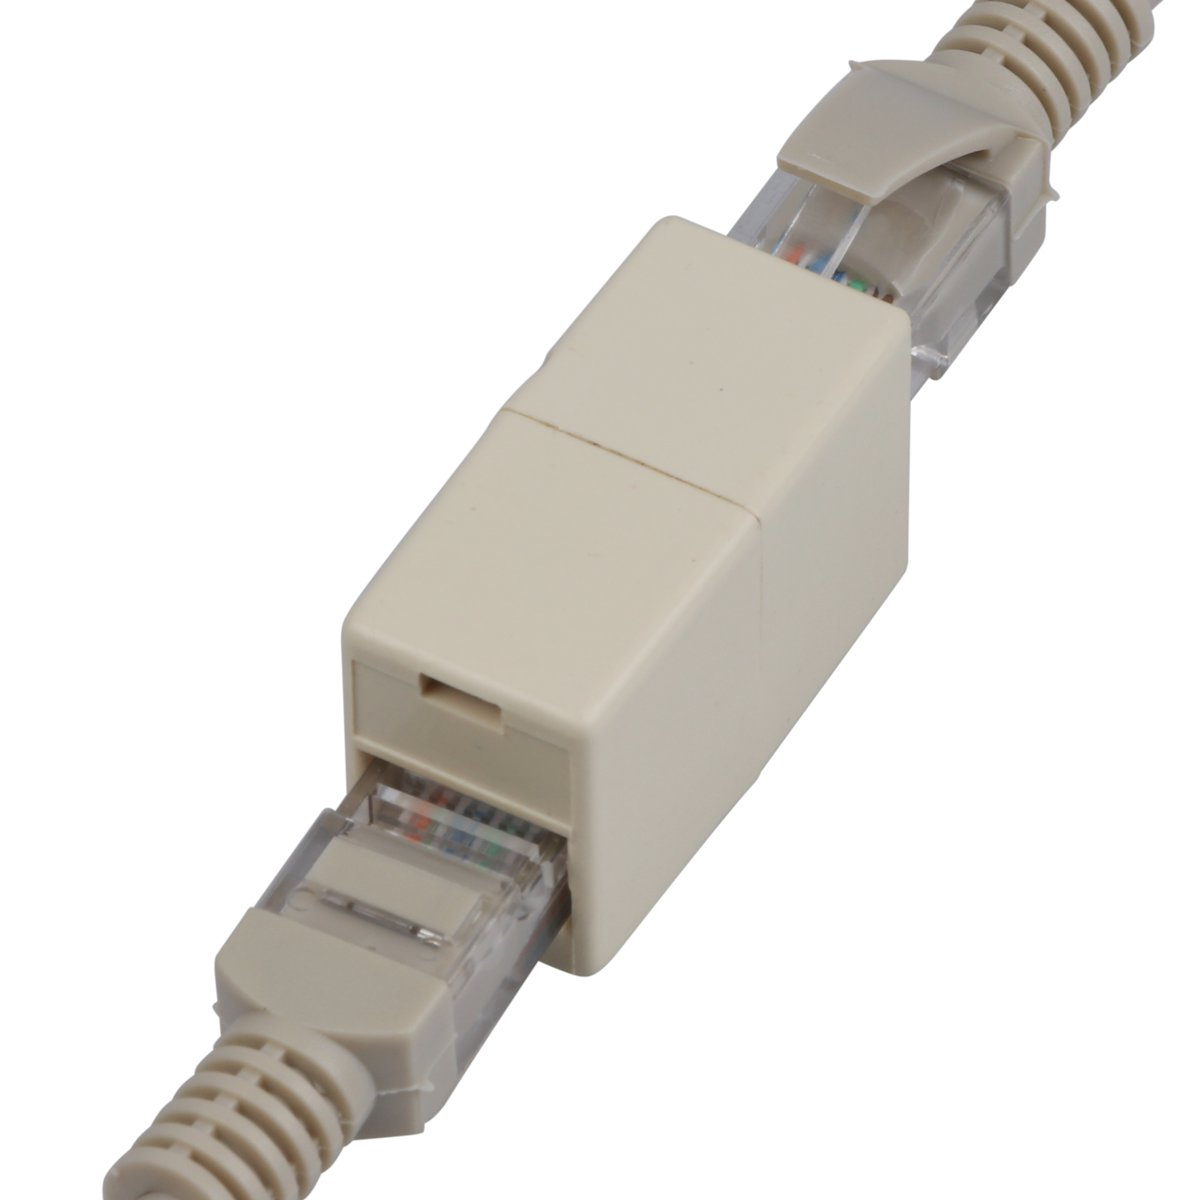 5 10pcs Rj45 5e Network Cable Straight Ethernet Lan Coupler Joiner Through Connector Up